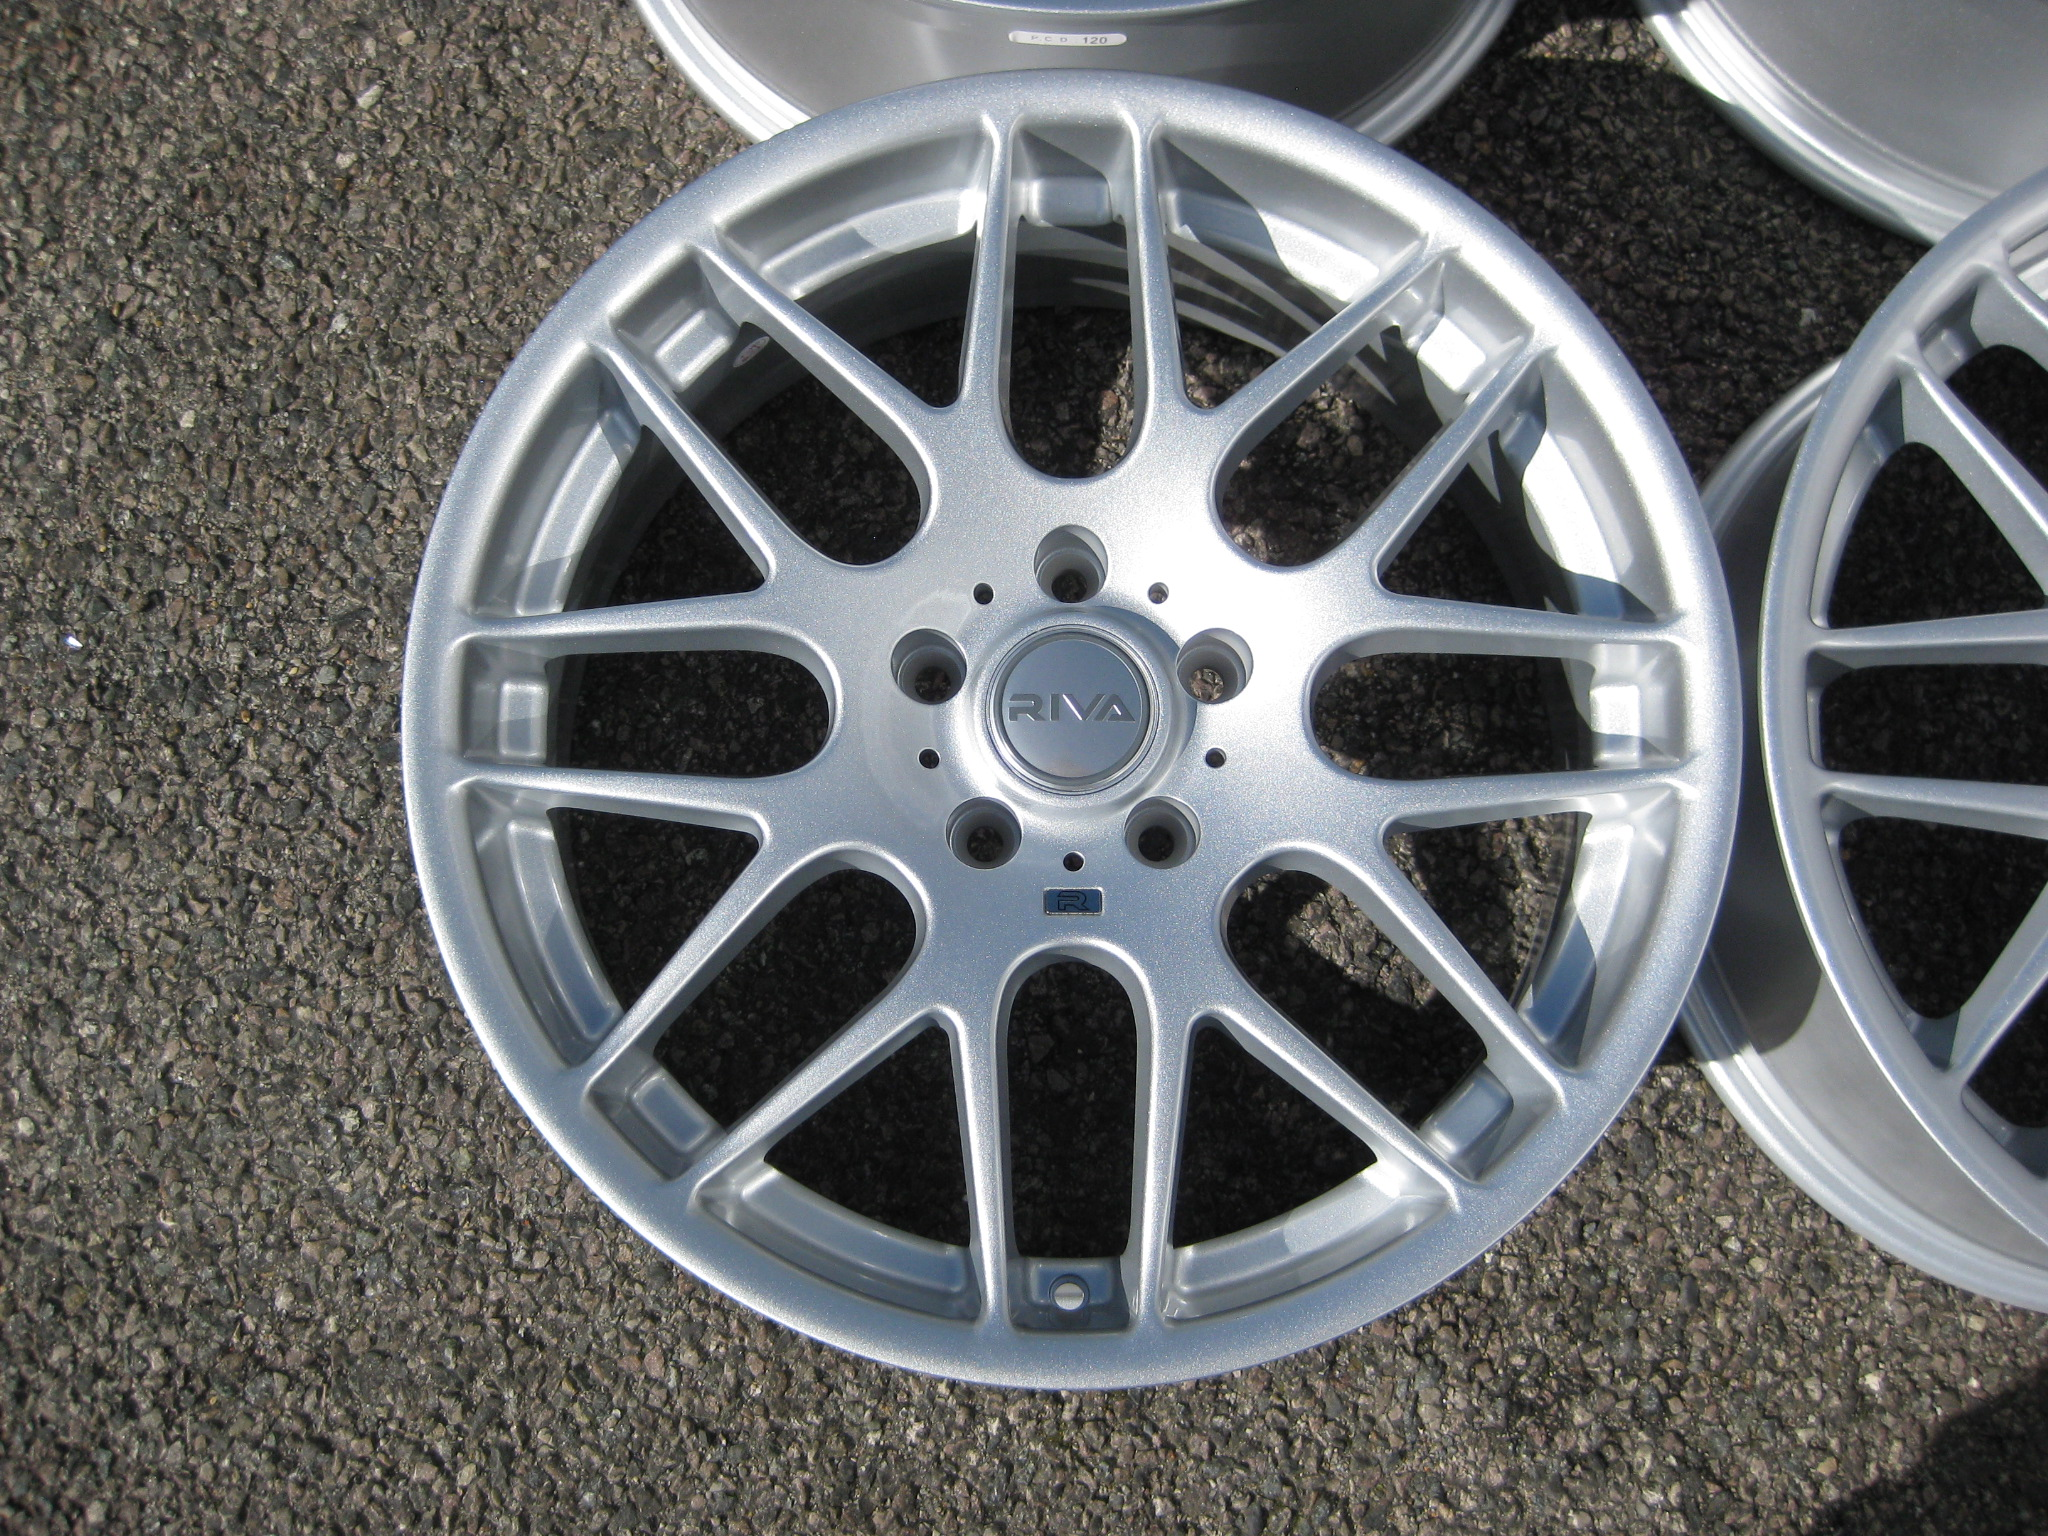 "NEW 18"" RIVA DTM CSL ALLOY WHEELS FINISHED IN SILVER, DEEPER LOOK, WIDER REAR'S"